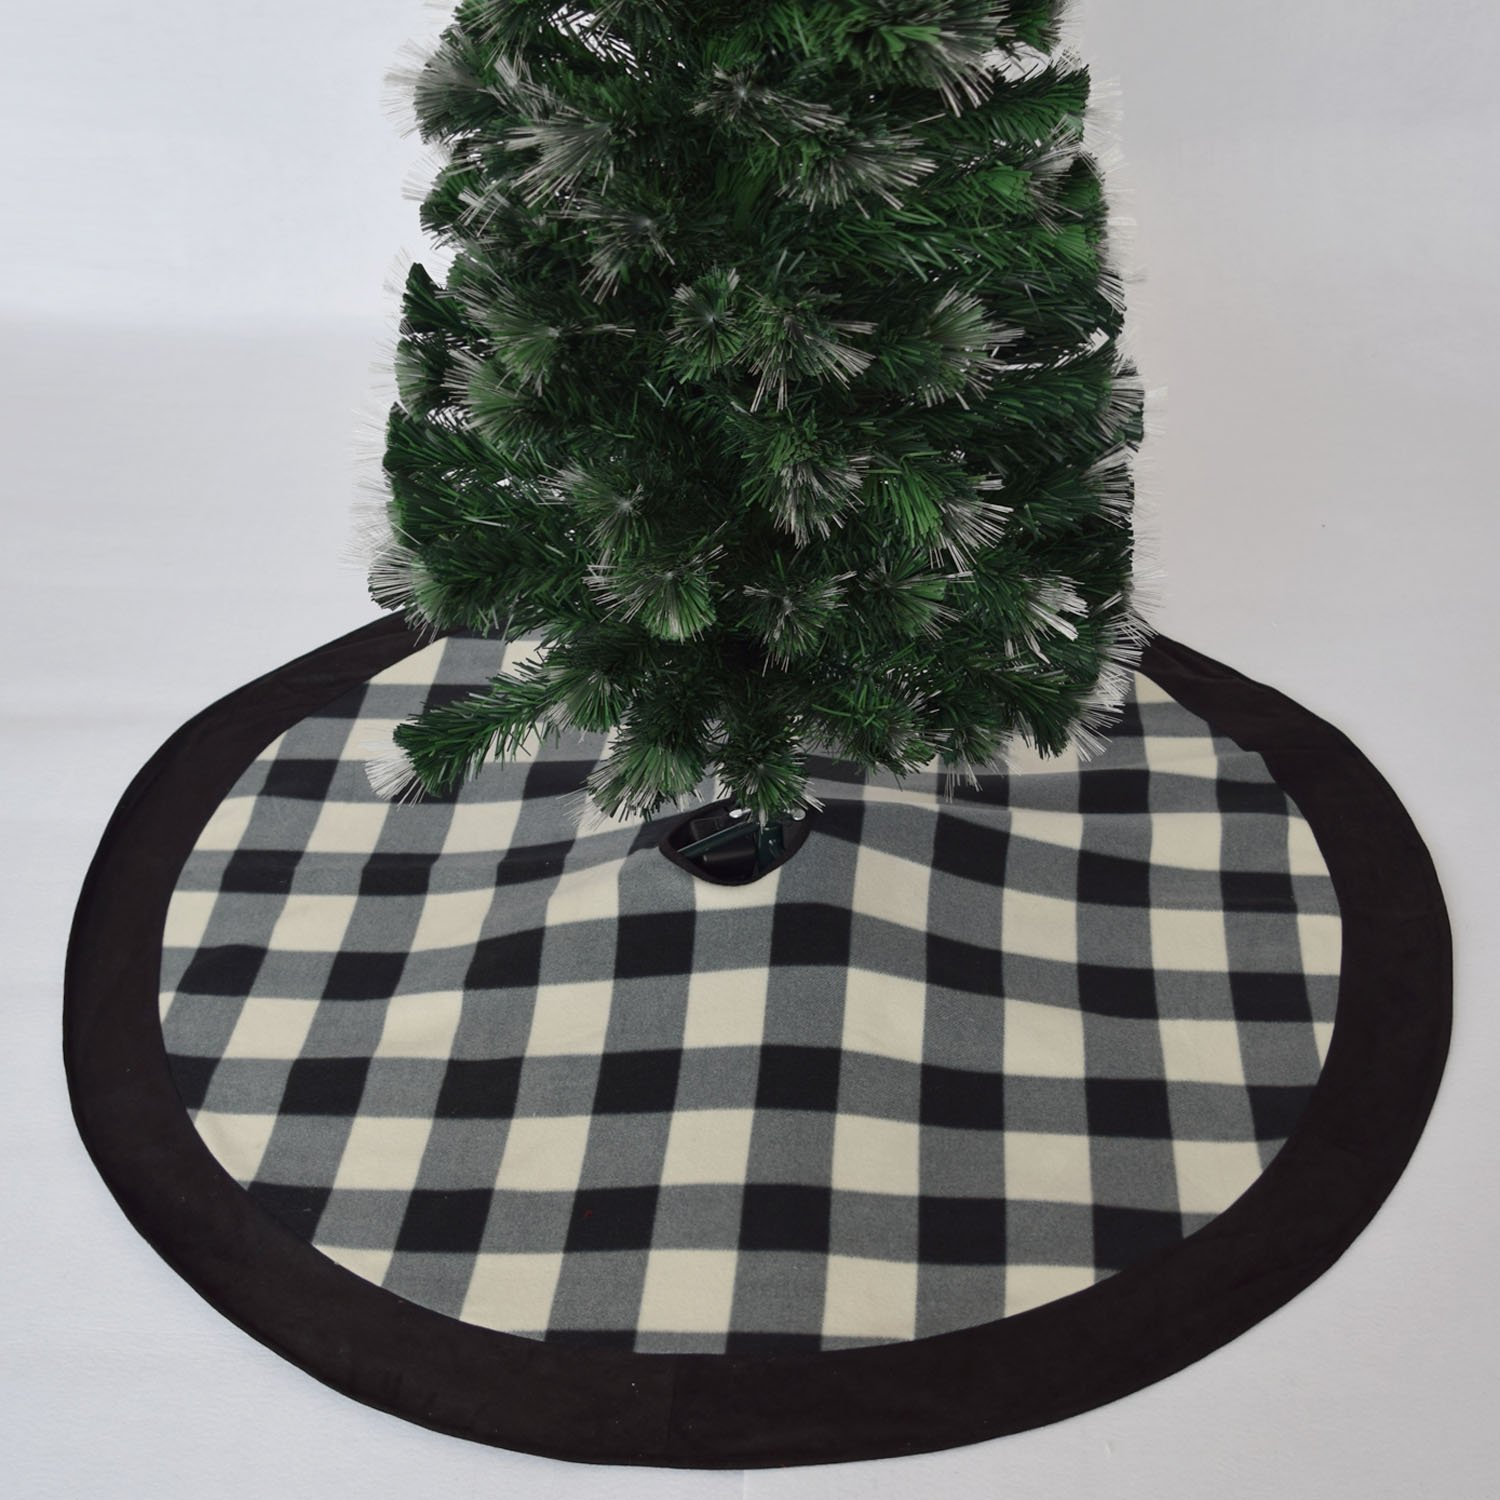 grey color christmas decoration gireshome 42 buffalo check plaid christmas tree skirt with black